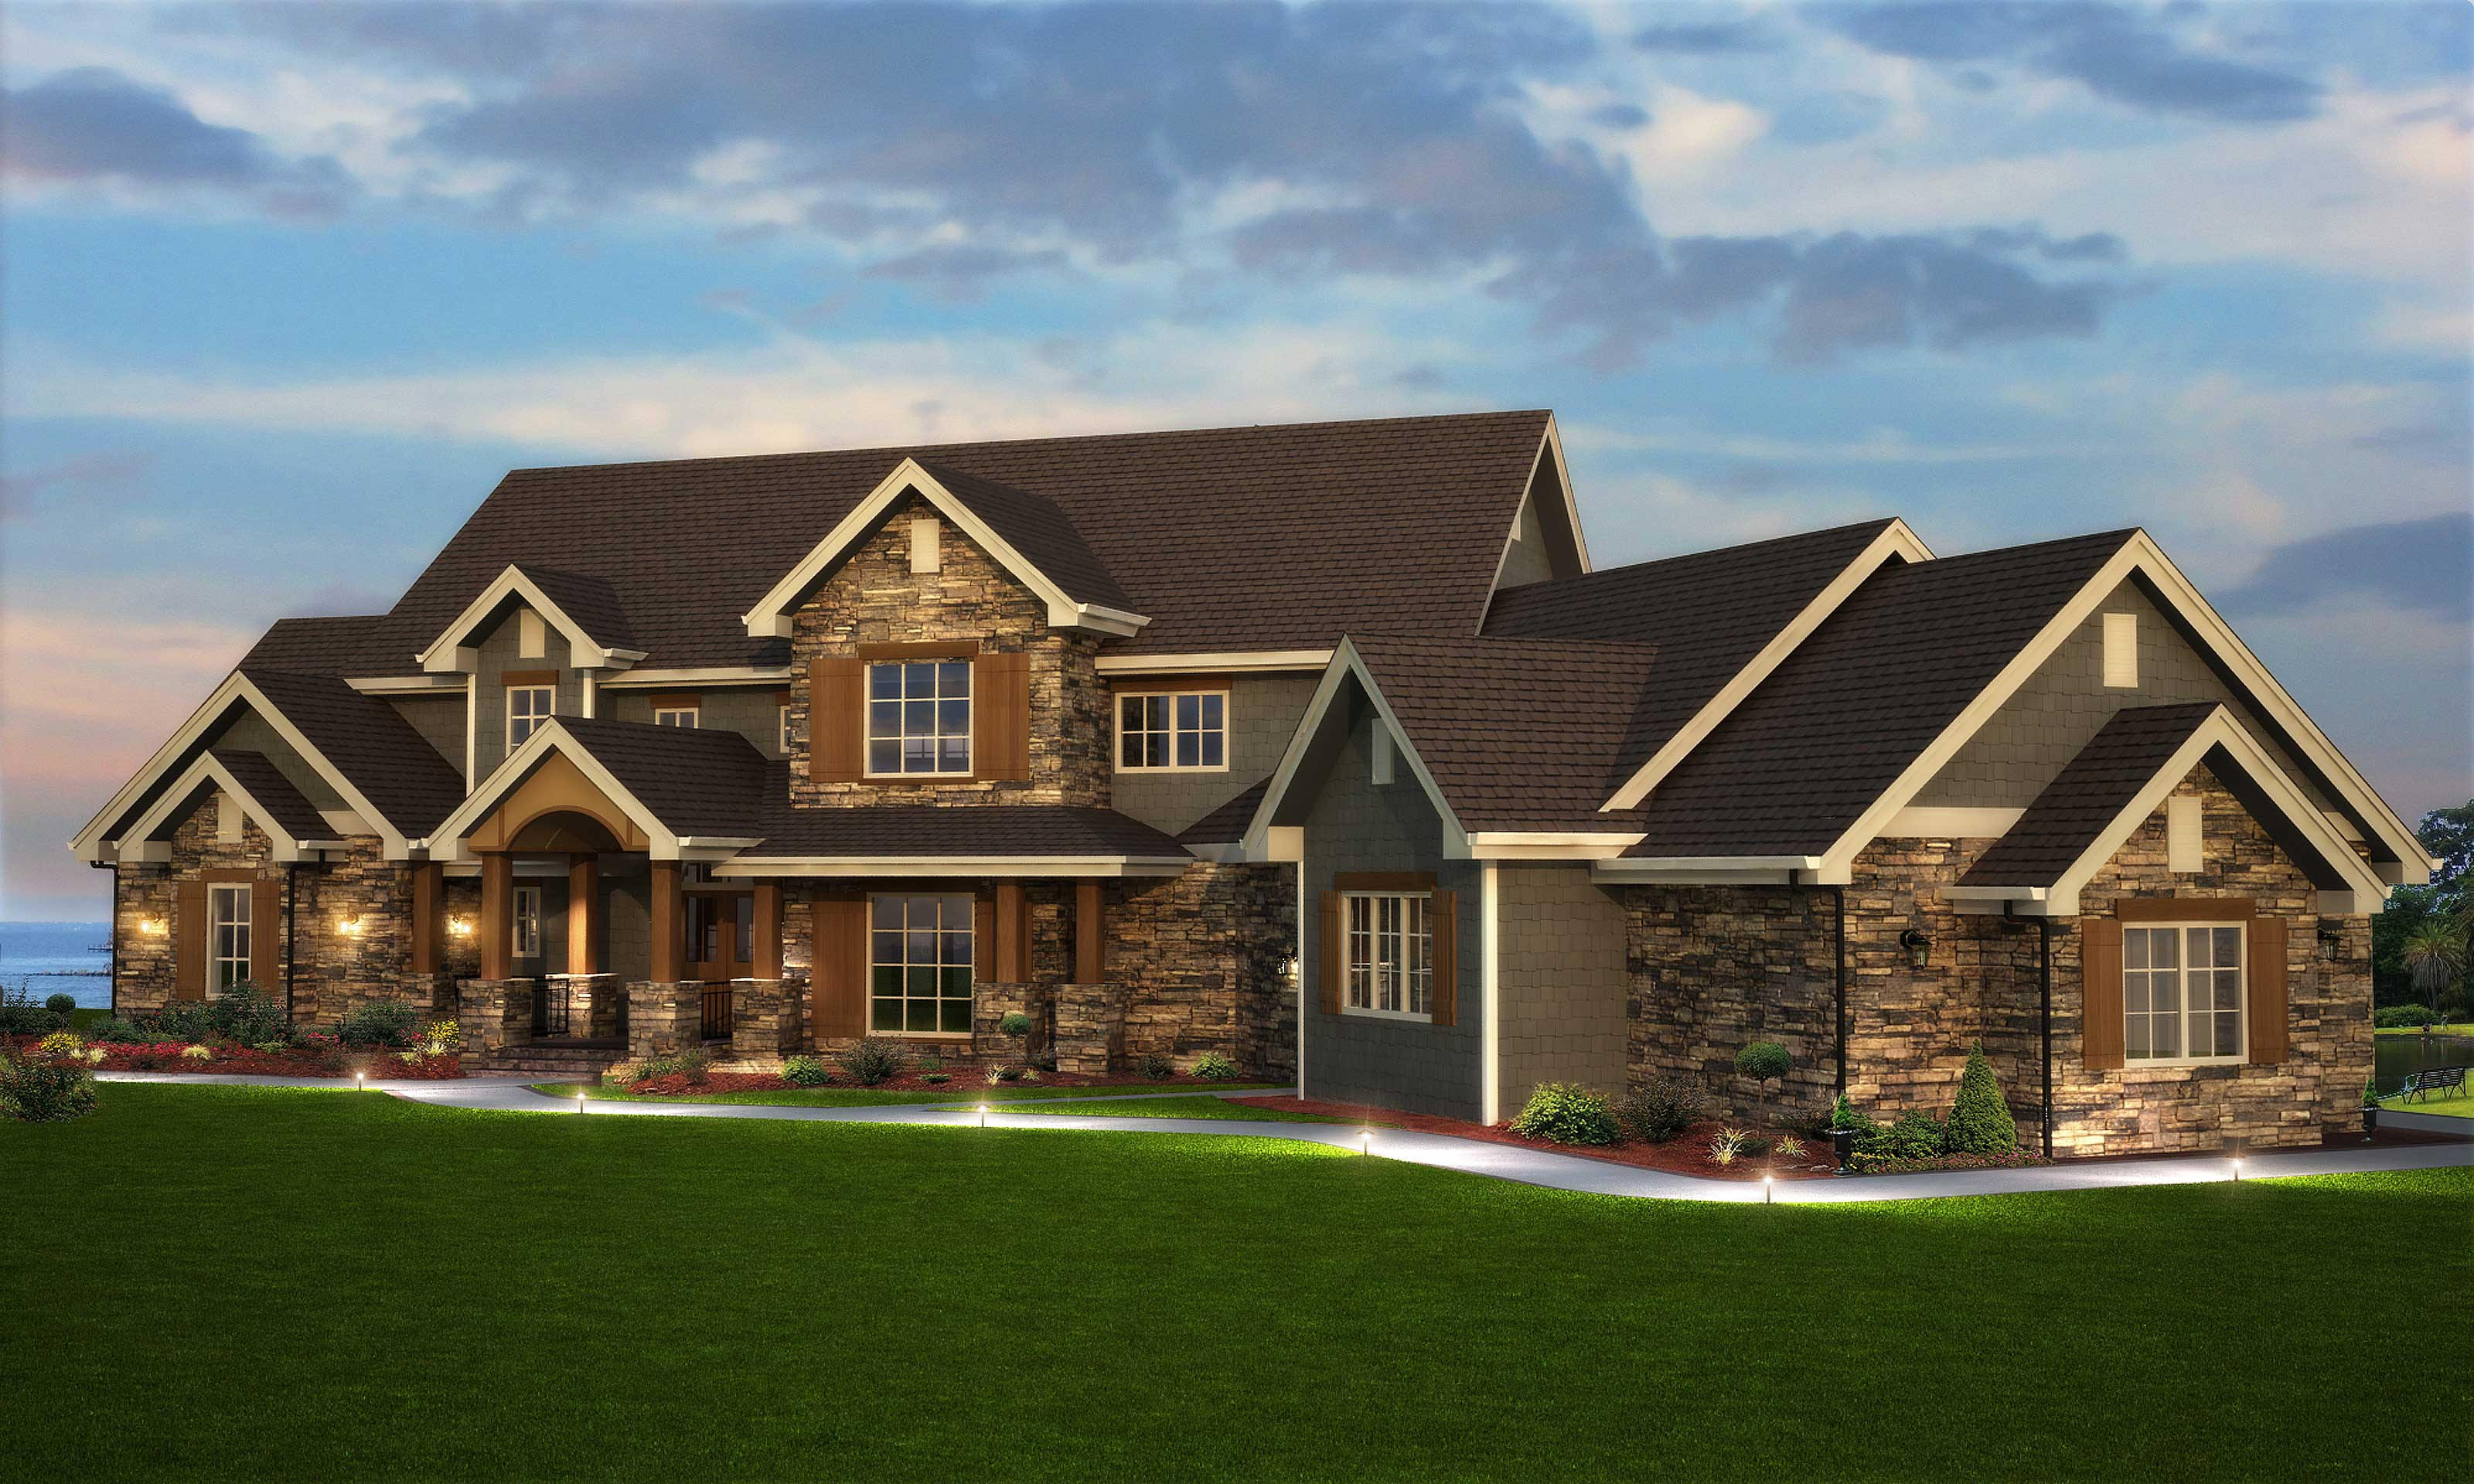 5 Bedroom House Plan - Luxury, Transitional Style - 5164 Sq Ft